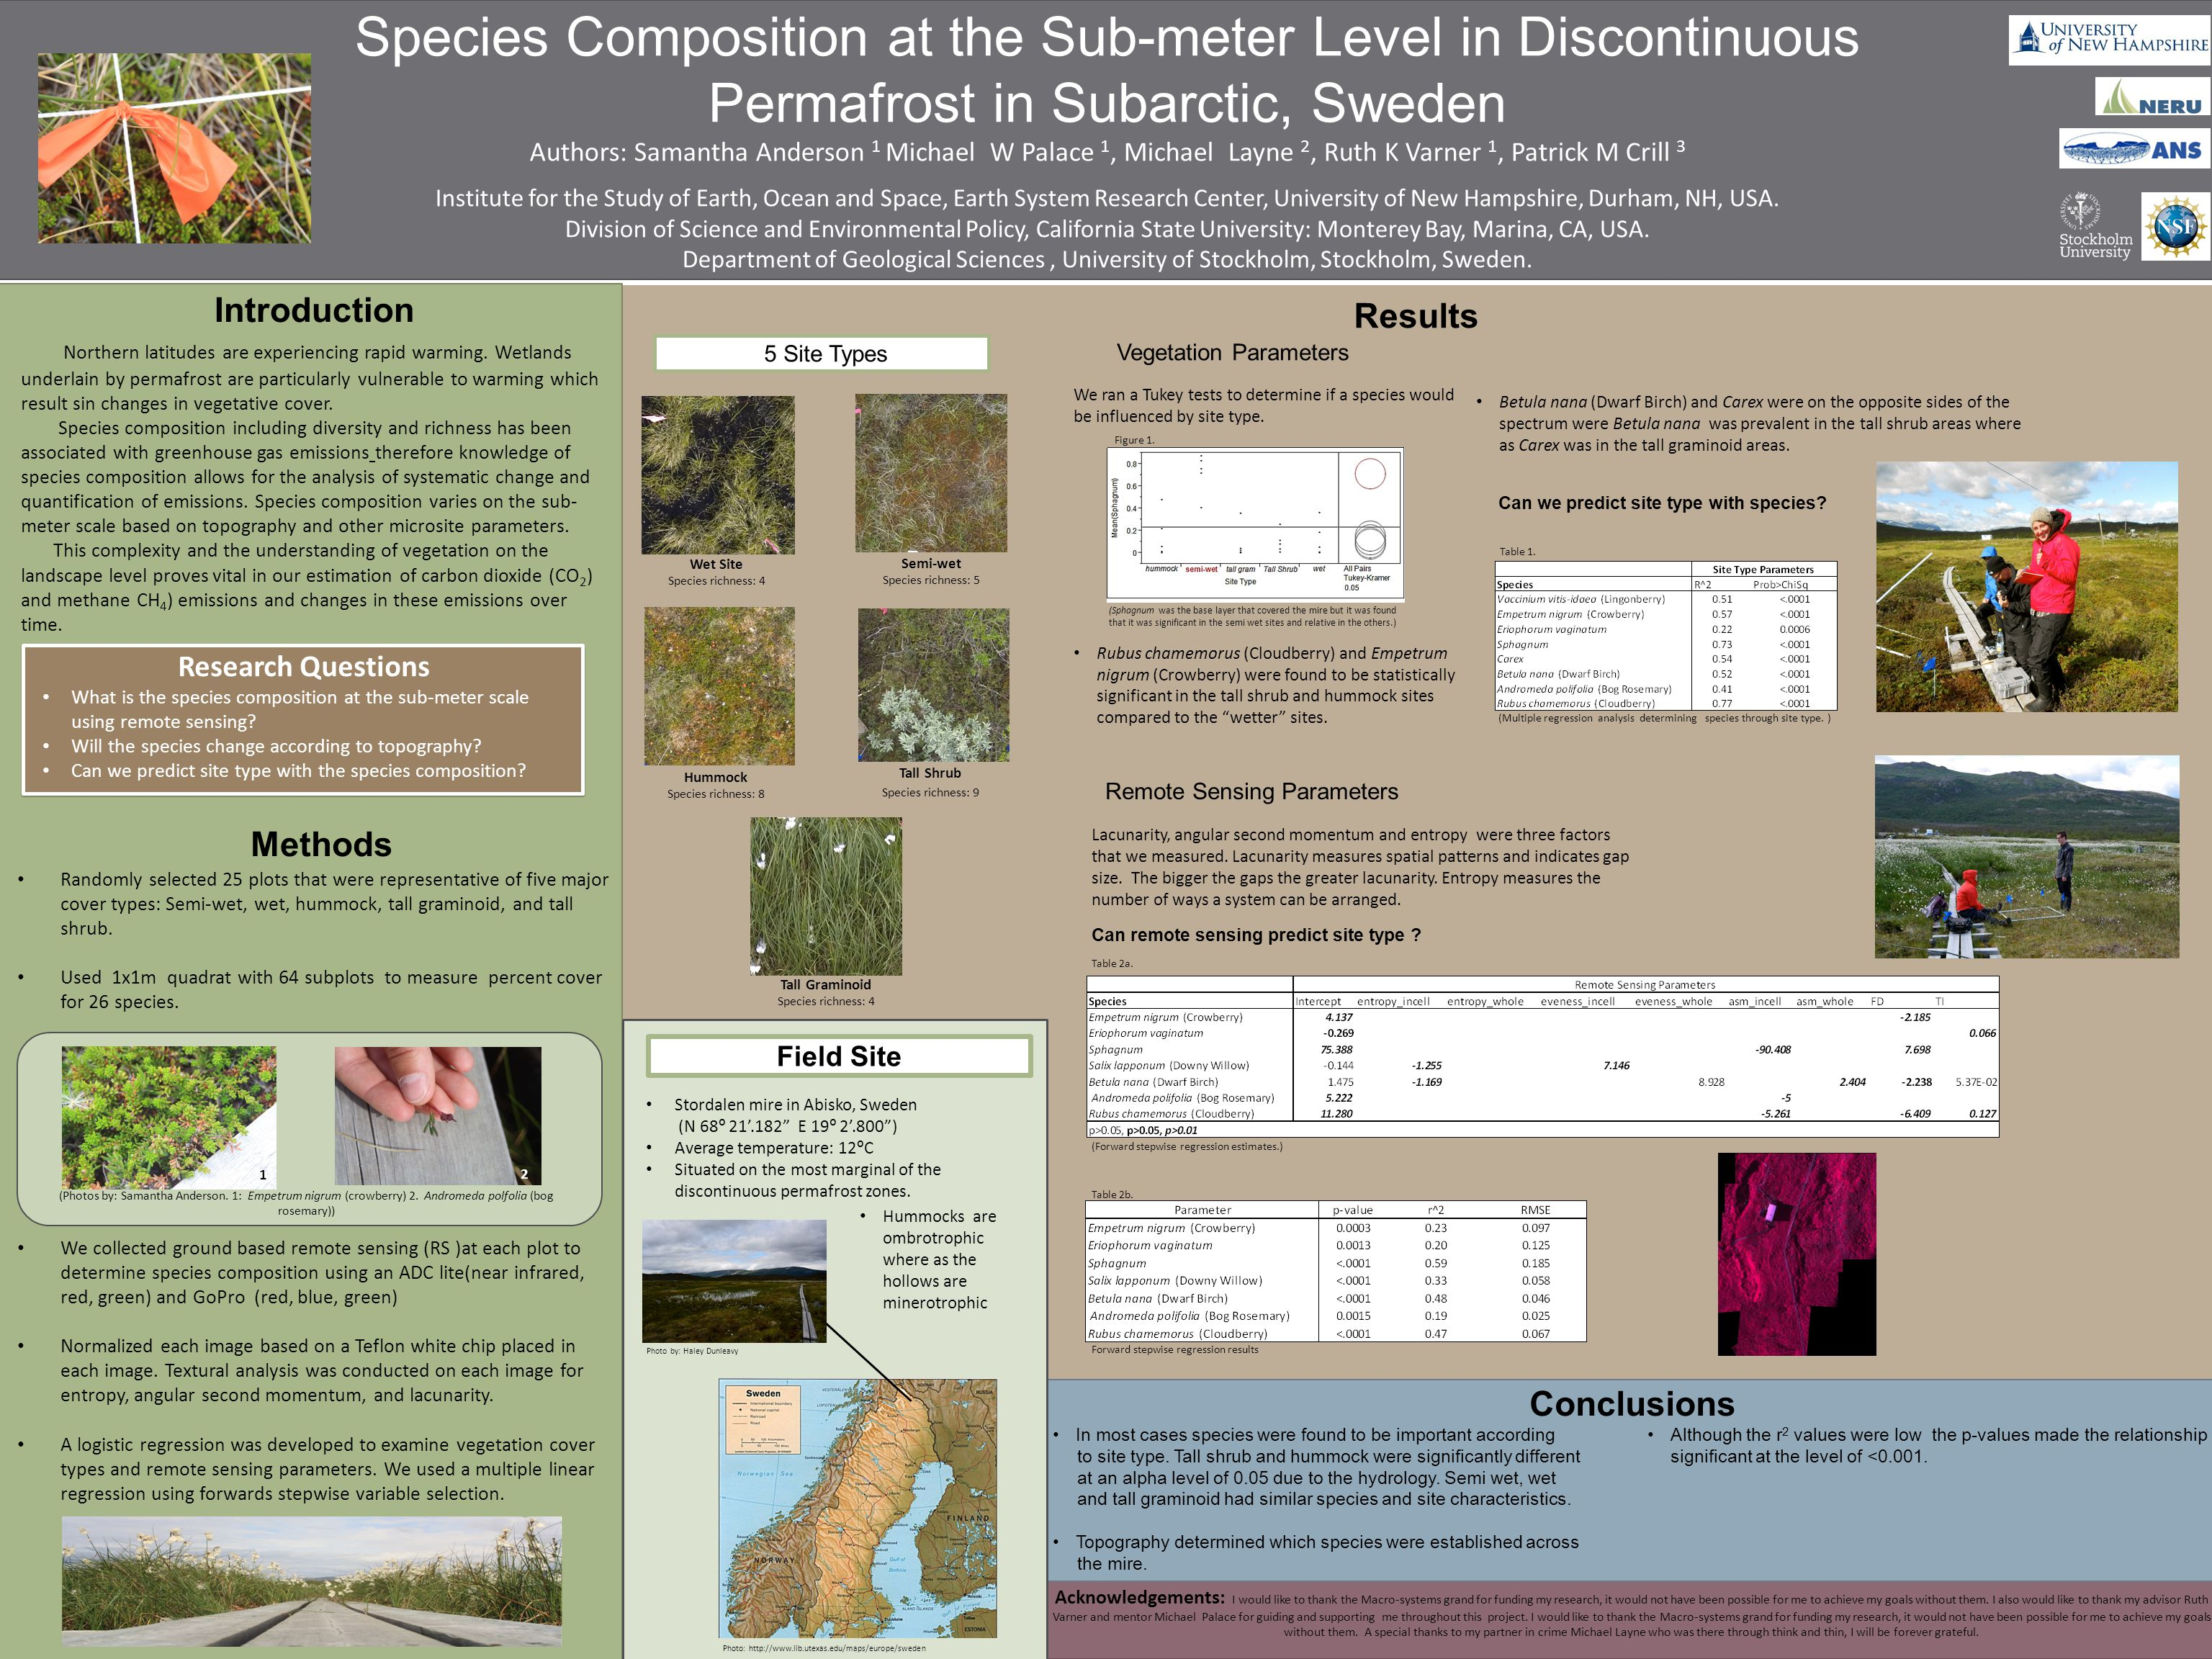 Species Composition at the Sub-meter Level in Discontinuous Permafrost in Subarctic, Sweden Authors: Samantha Anderson 1 Michael W Palace 1, Michael Layne 2, Ruth K Varner 1, Patrick M Crill 3 Institute for the Study of Earth, Ocean and Space, Earth System Research Center, University of New Hampshire, Durham, NH, USA.